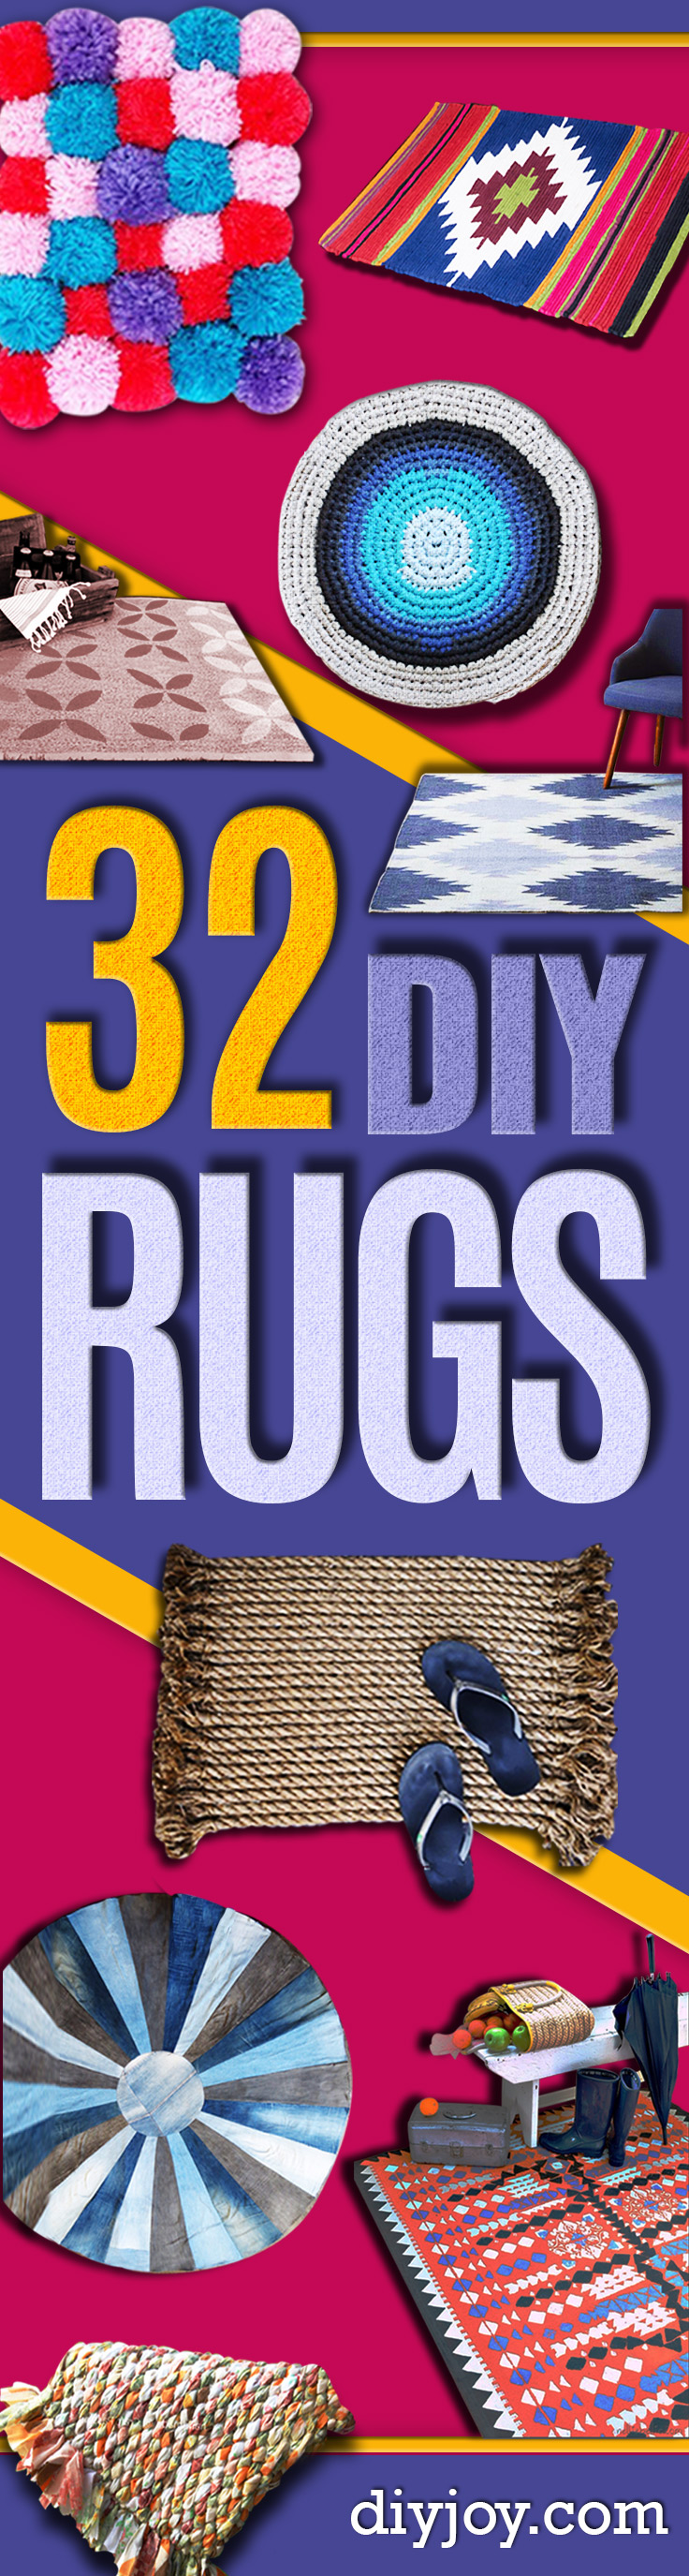 Easy DIY Rugs and Handmade Rug Making Project Ideas - Simple Home Decor for Your Floors, Fabric, Area, Painting Ideas, Rag Rugs, No Sew, Dropcloth and Braided Rug Tutorials